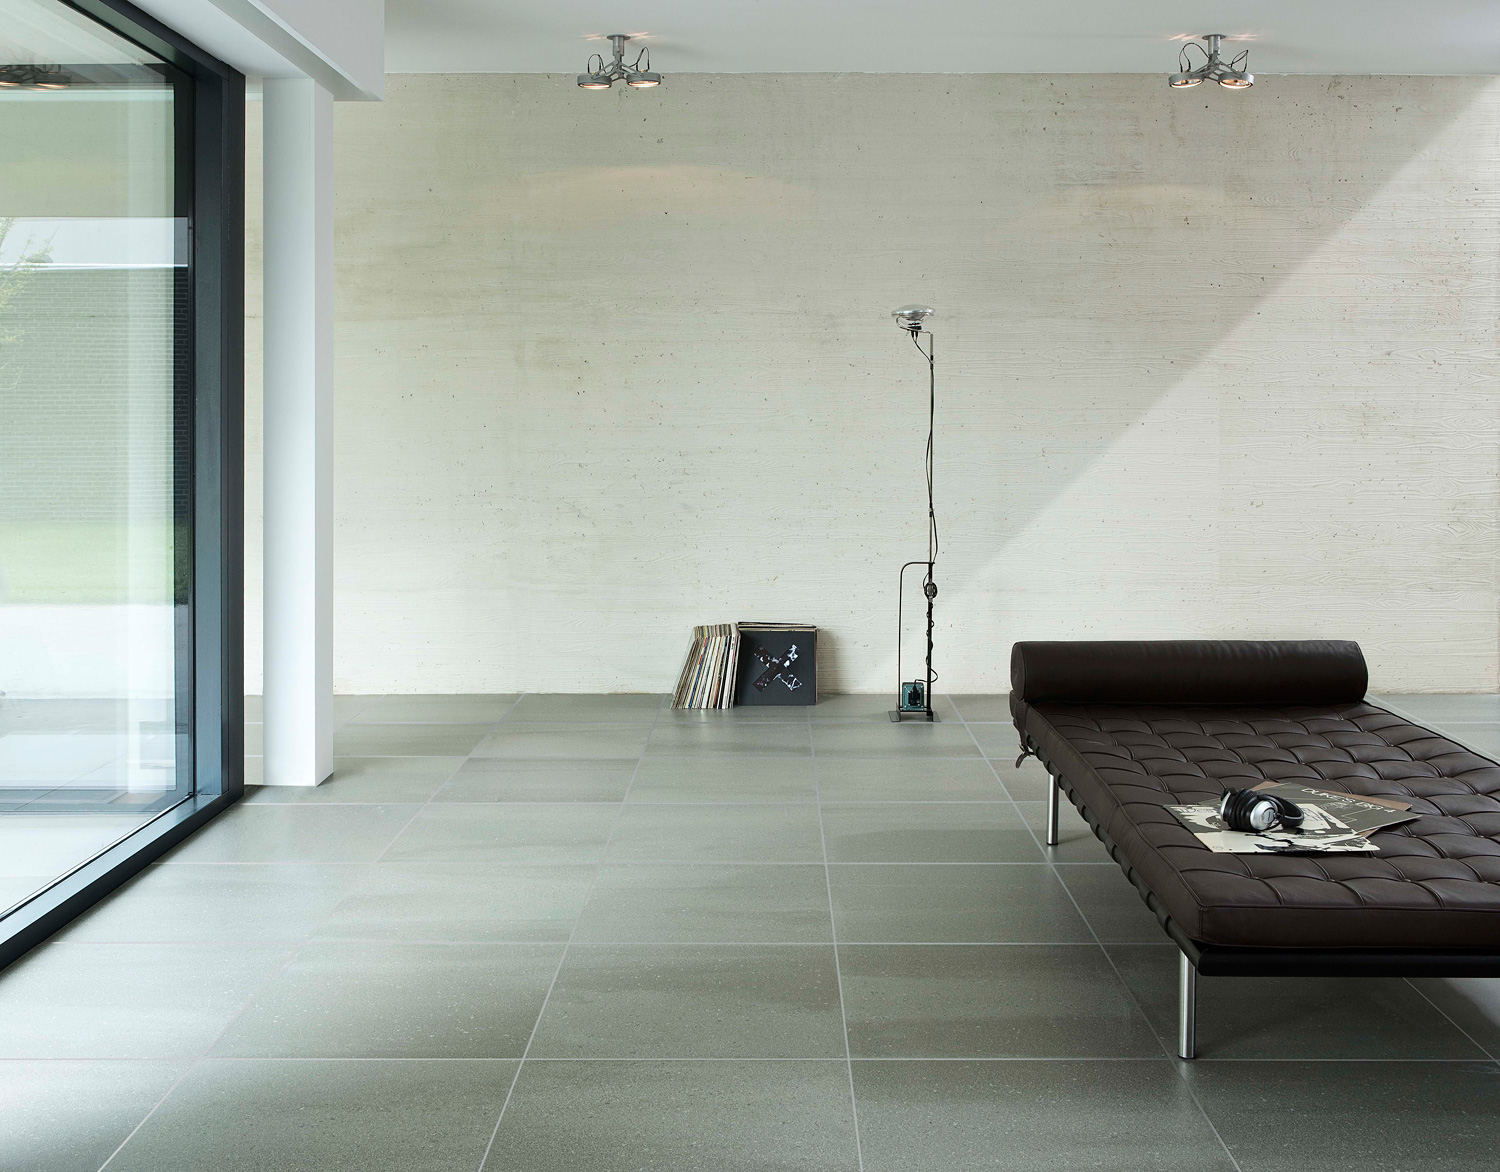 Mosa Introduces Scenes And Solids Tile Collections To The